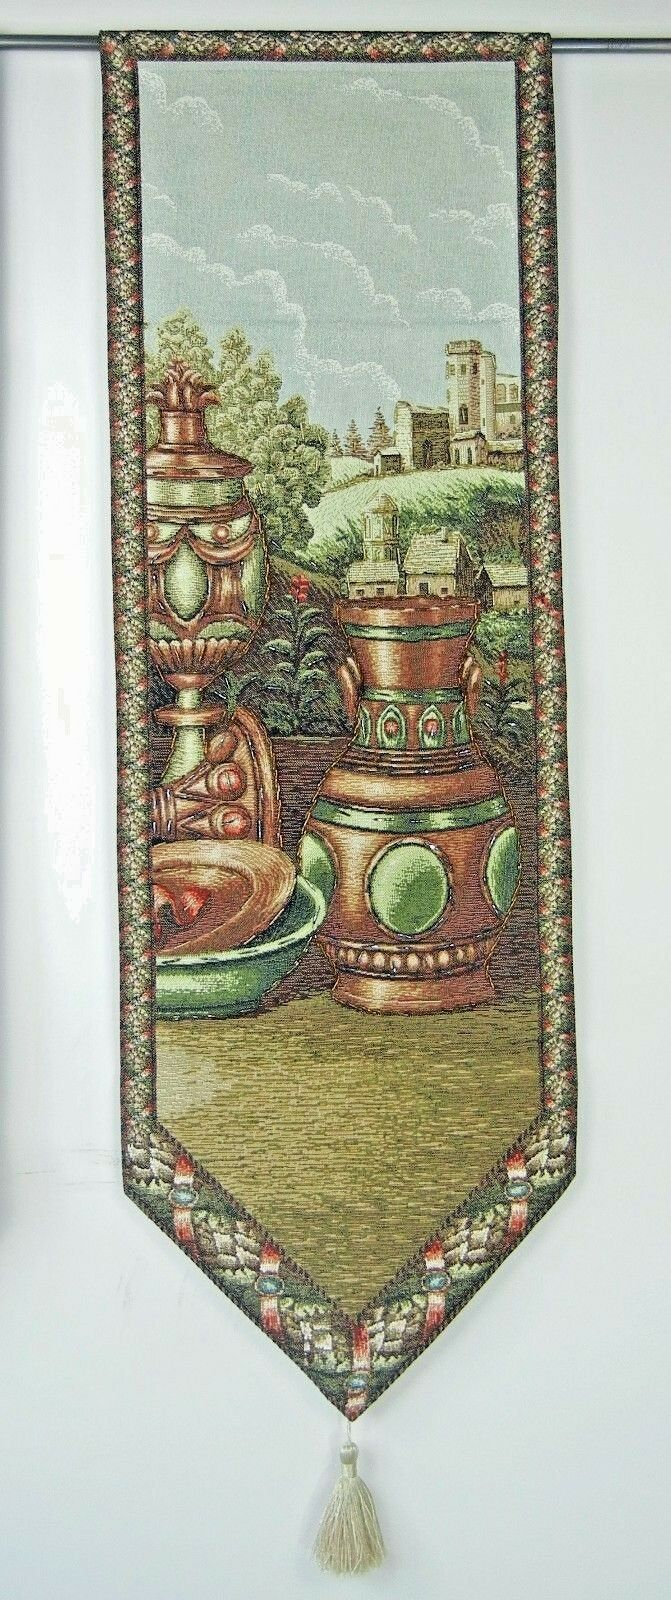 Woven Wall Hanging Cotton Tapestry Hand Beaded Art Countryside Scene 15 x 46